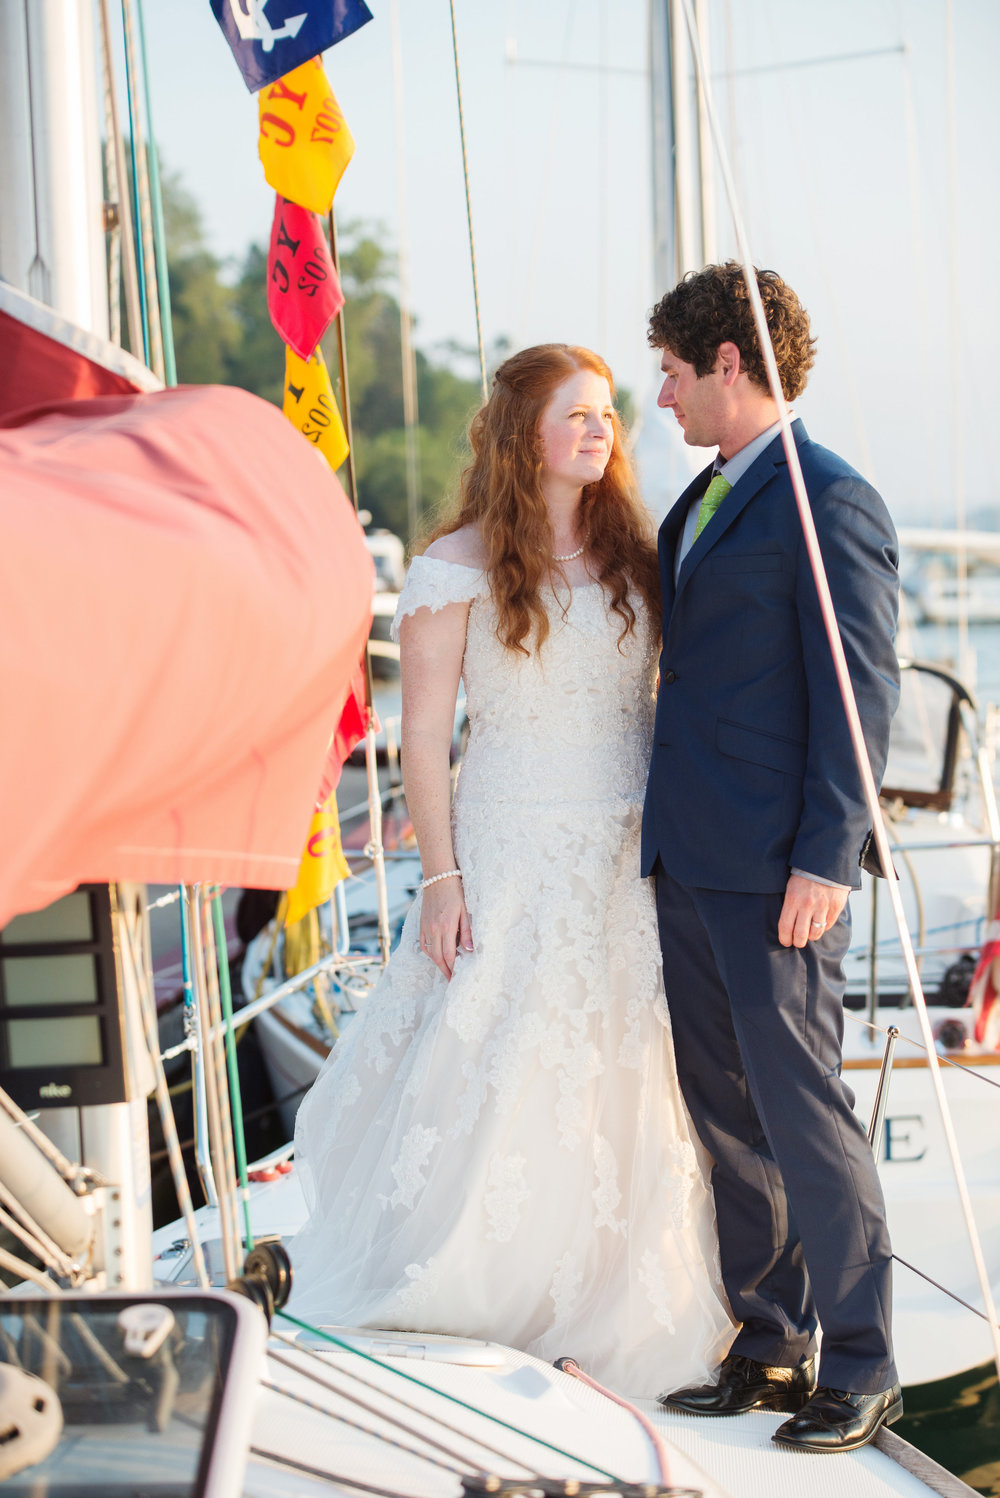 HR+-+2+Rich+Jill+Wed-Boat+Sunset+Photos-0015.jpg